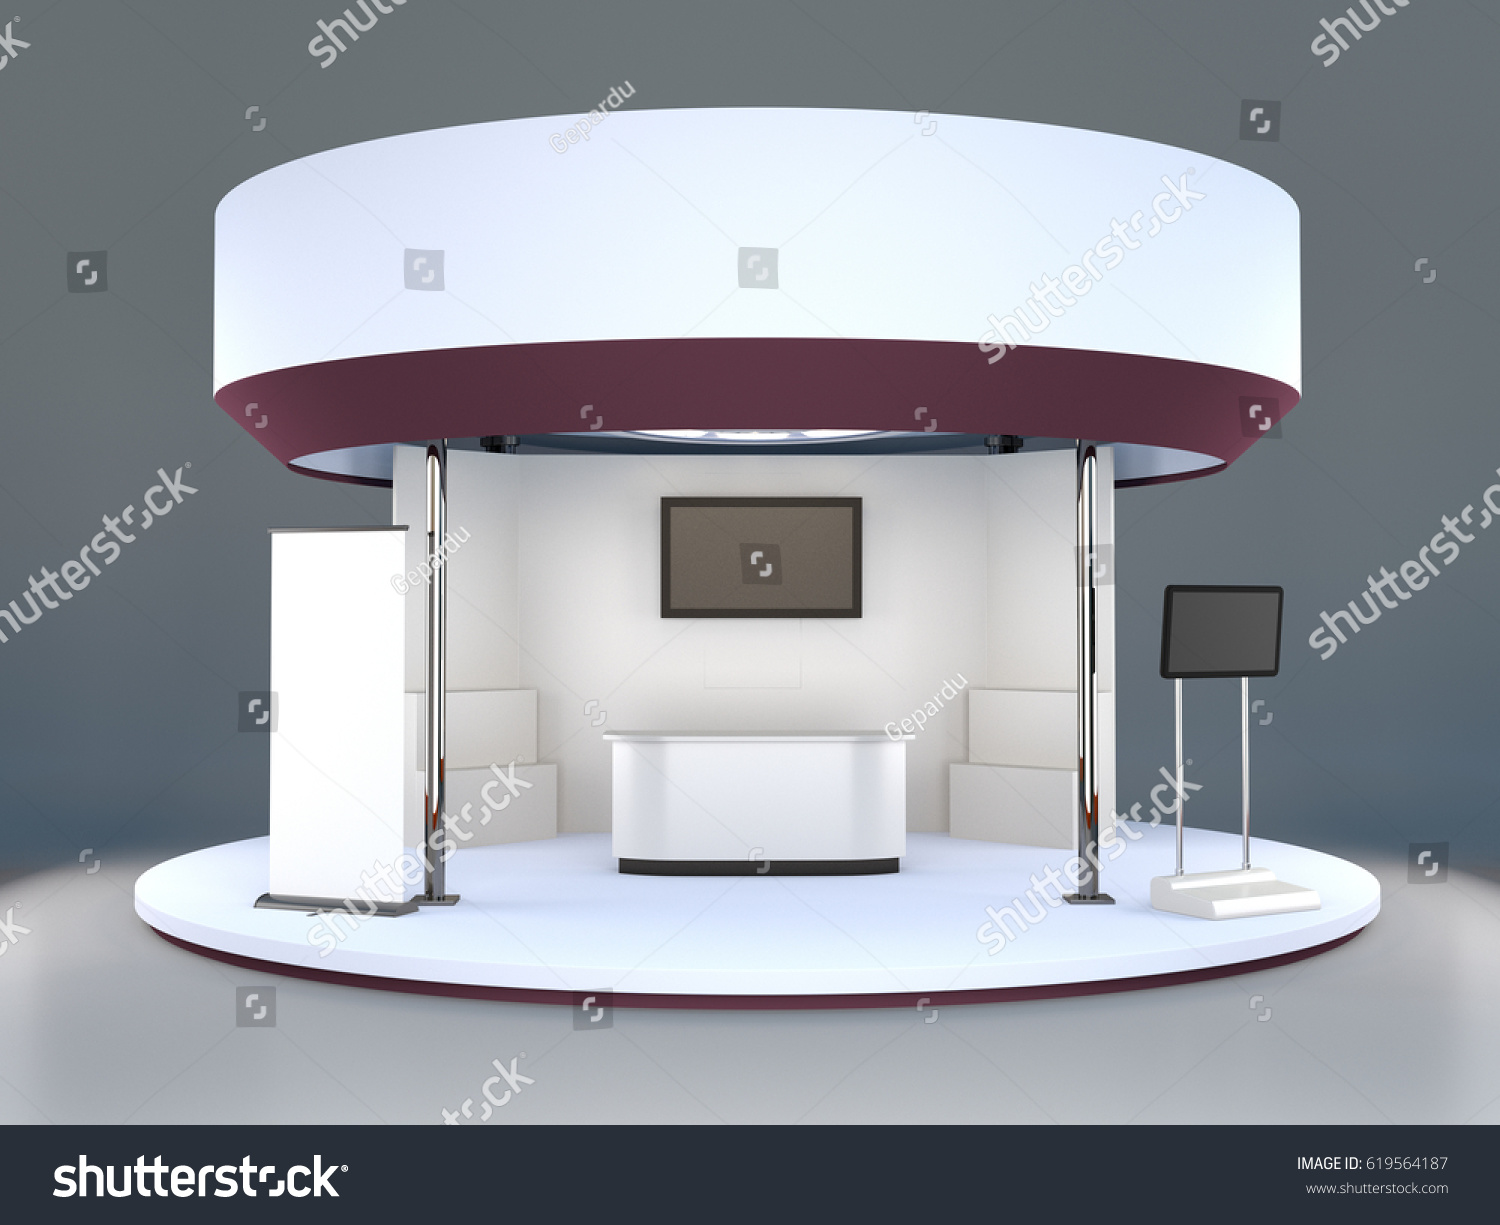 Exhibition Stand Circle : Fair trade exhibition stand d rendering stock illustration